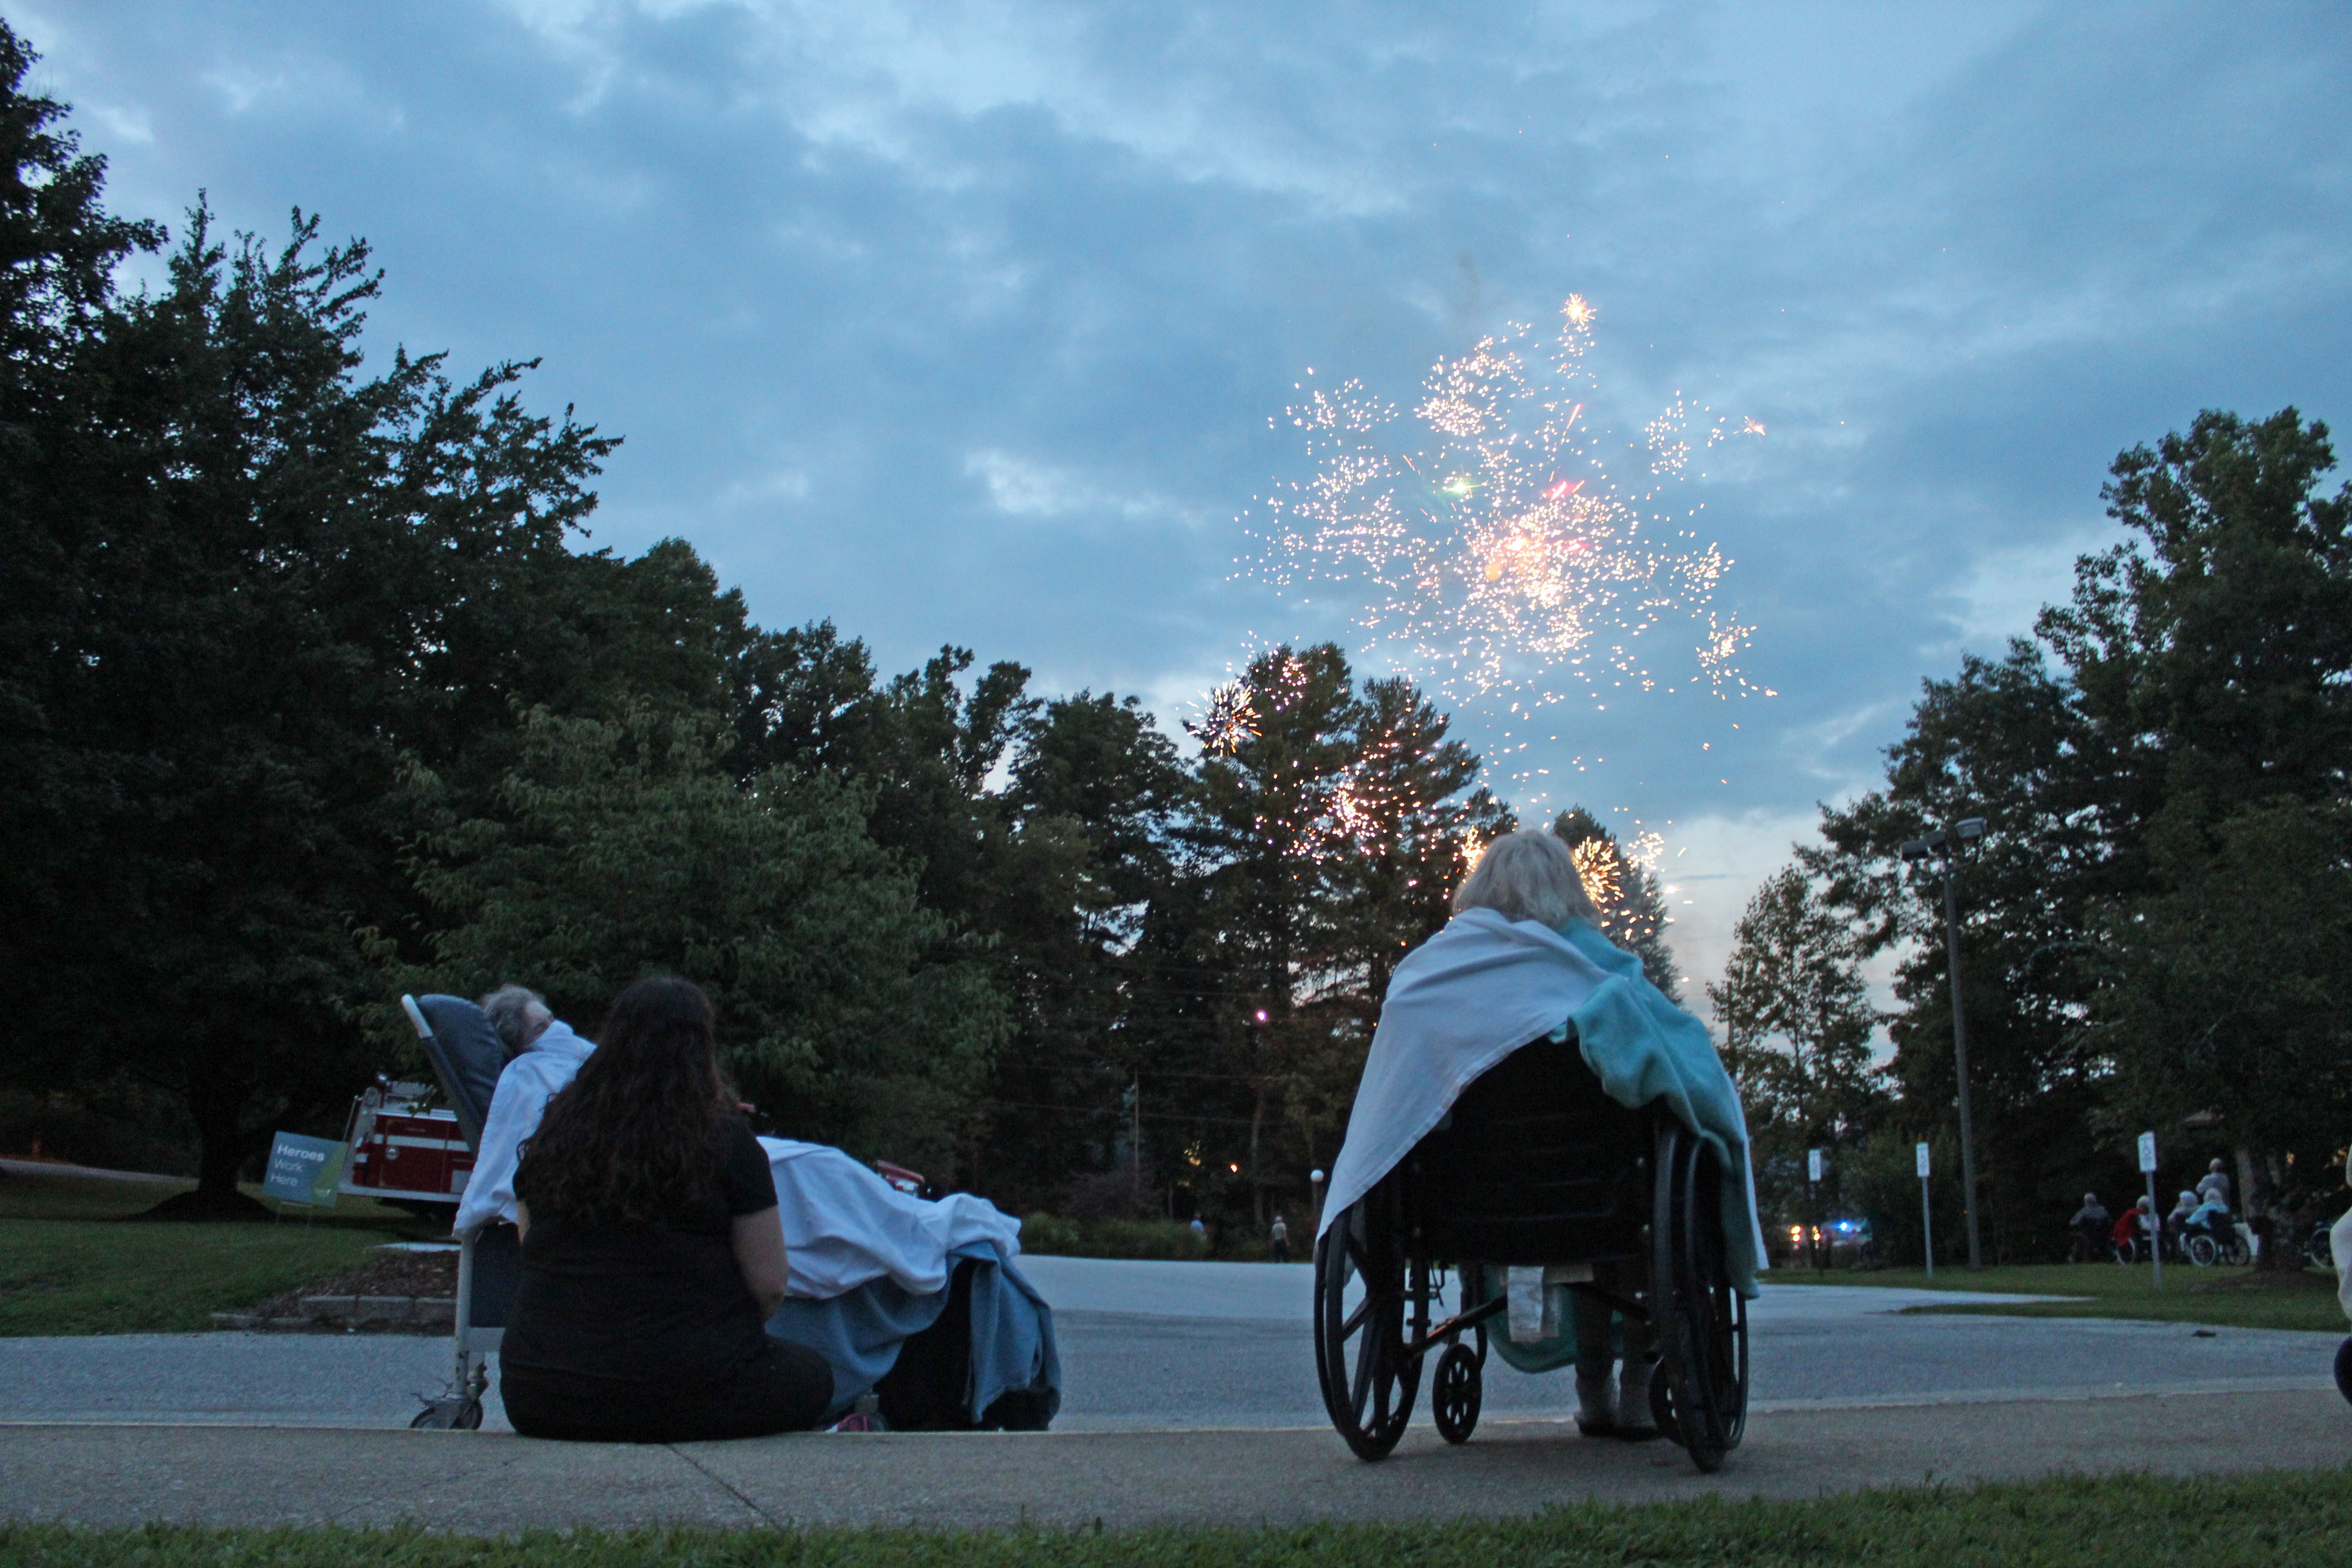 Brian Center residents cozy up with blankets as they watch a special fireworks show on Thursday, Aug. 20. Spruce Pine Police Chief Bill Summerlin raised funds to provide a show and ice cream for residents of the Brian Center and Mitchell House. (MNJ photo/Juliana Walker)